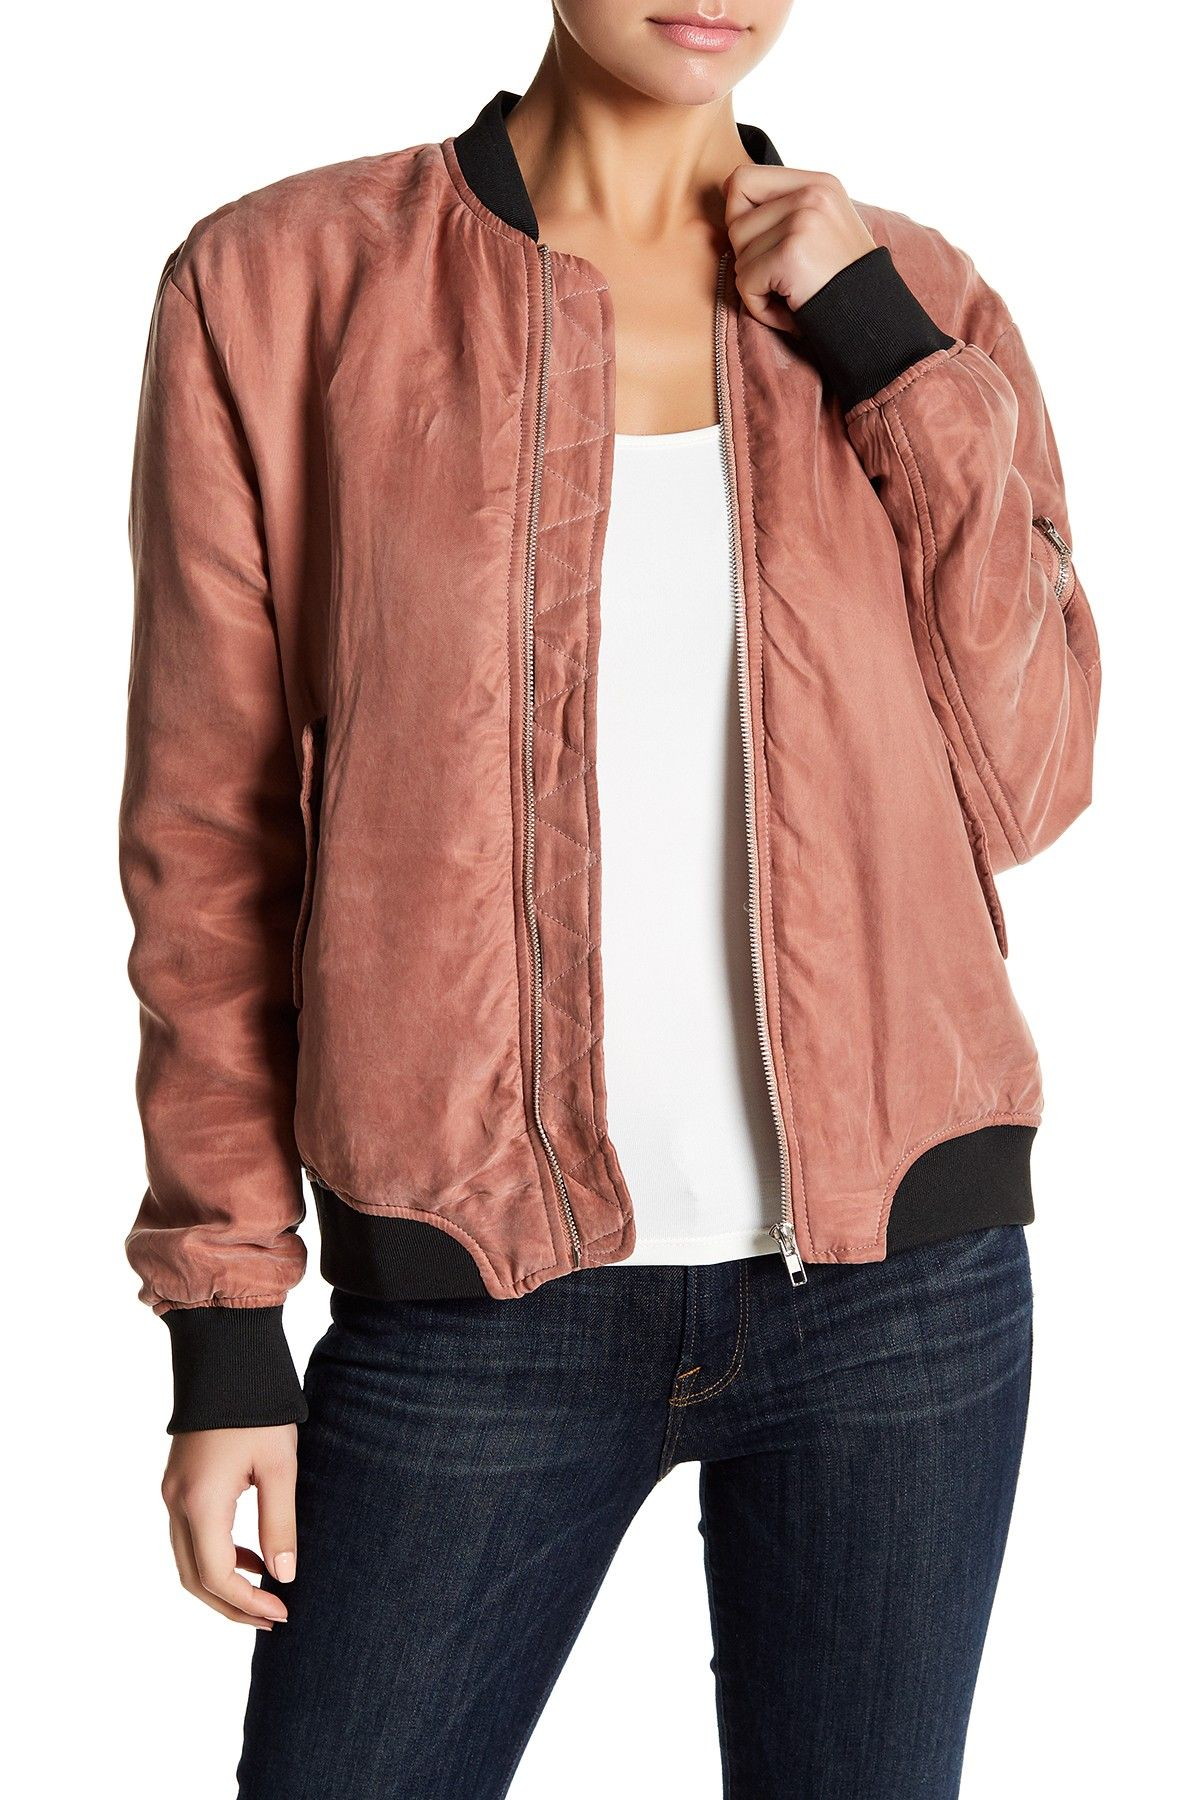 Faux Suede Bomber Jacket By Emory Park On Nordstrom Rack Bomber Jacket Suede Bomber Jacket Jackets [ 1800 x 1200 Pixel ]